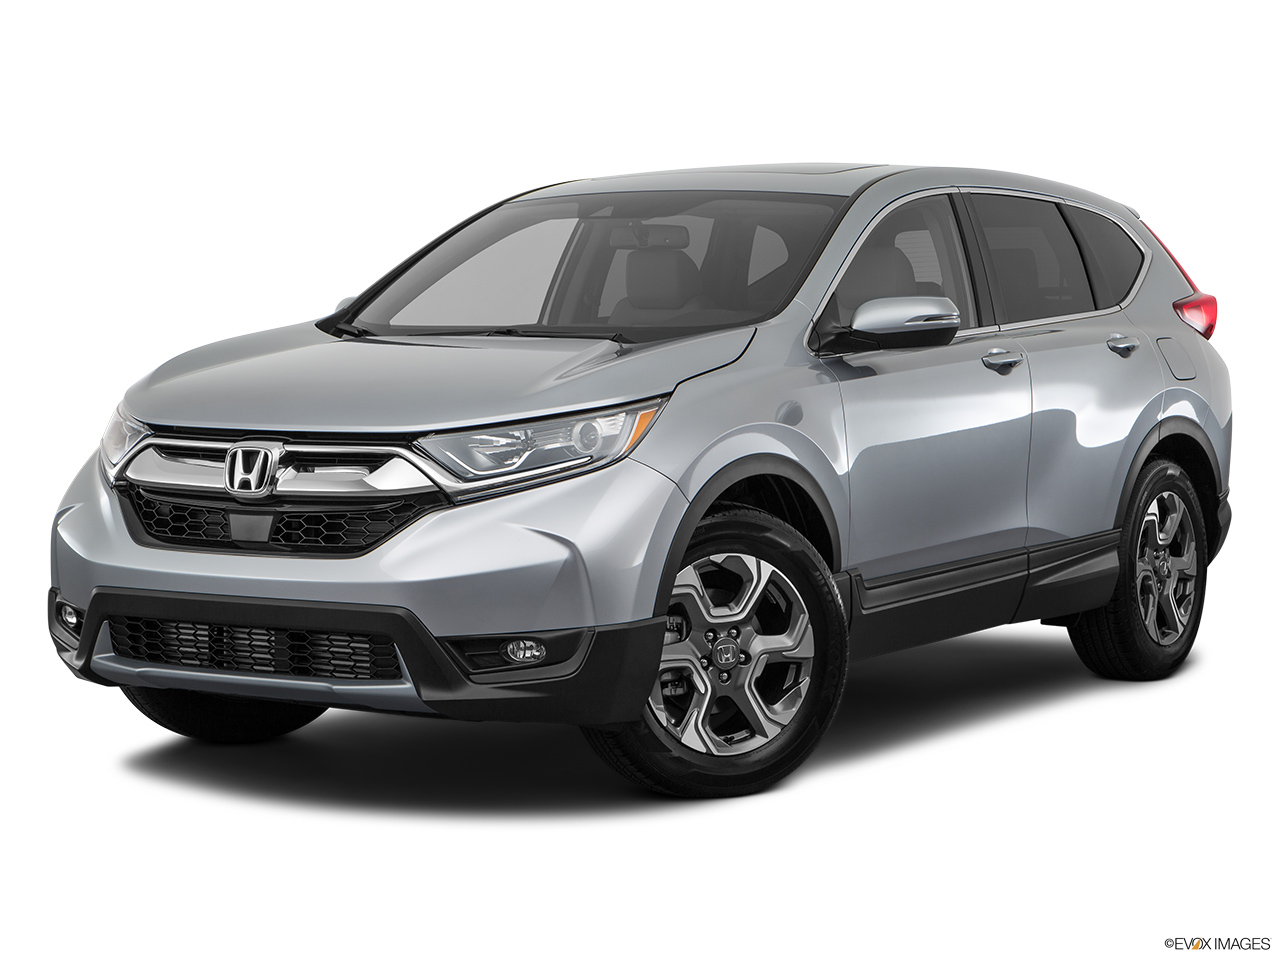 Honda cr v 2017 lx plus 2wd in qatar new car prices for Honda crv price